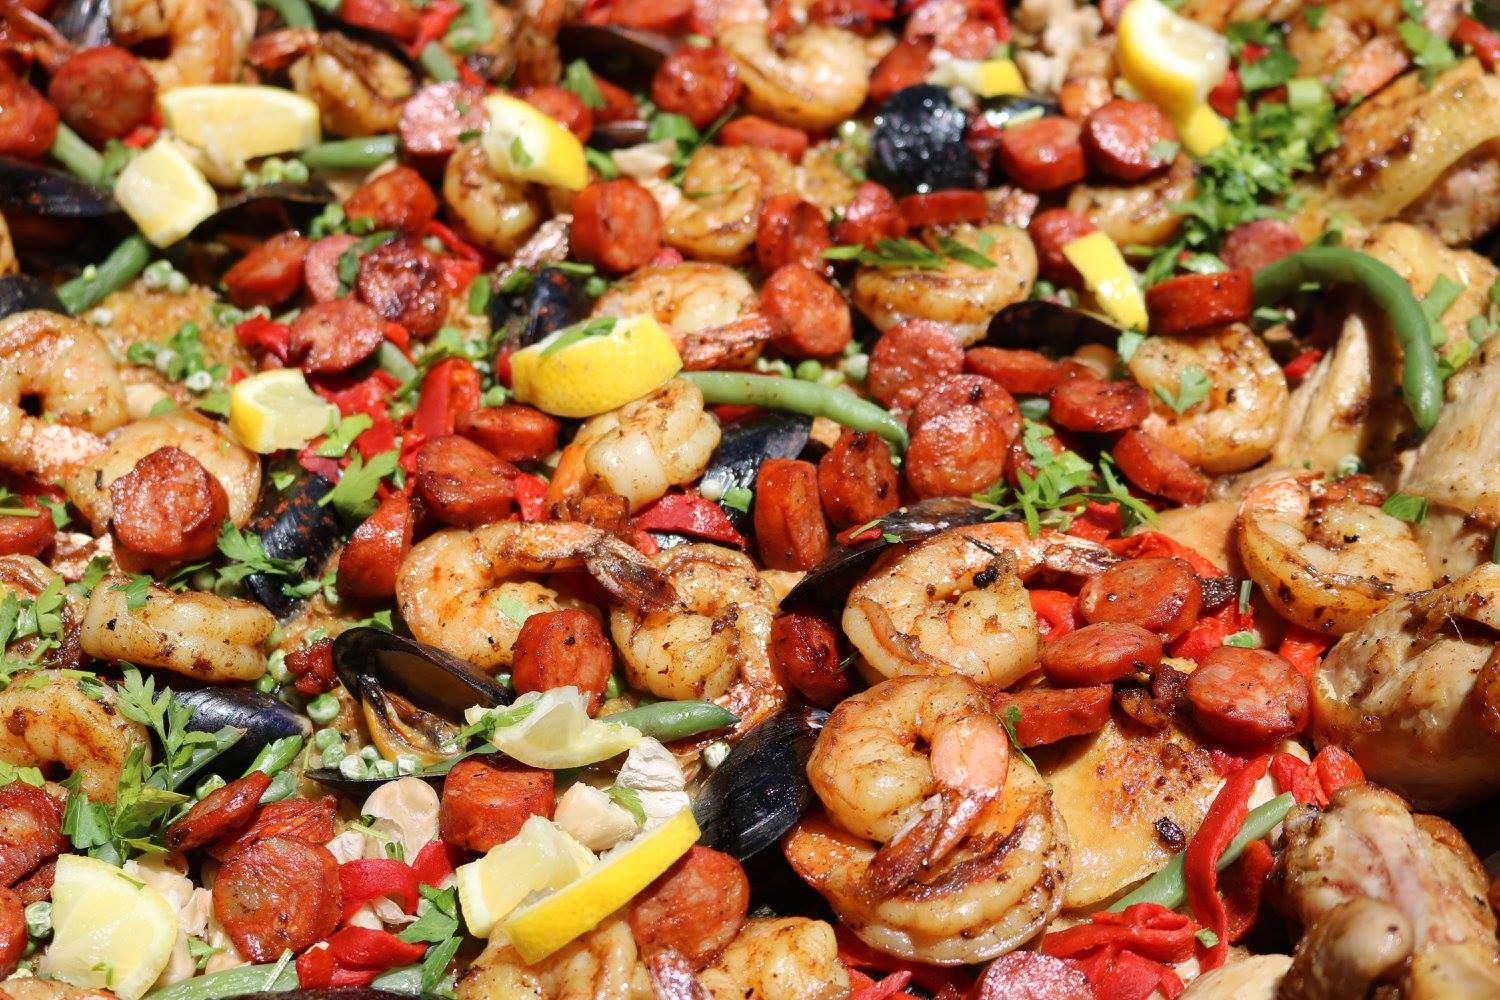 bomba-paella-catering-los-angeles14.jpg